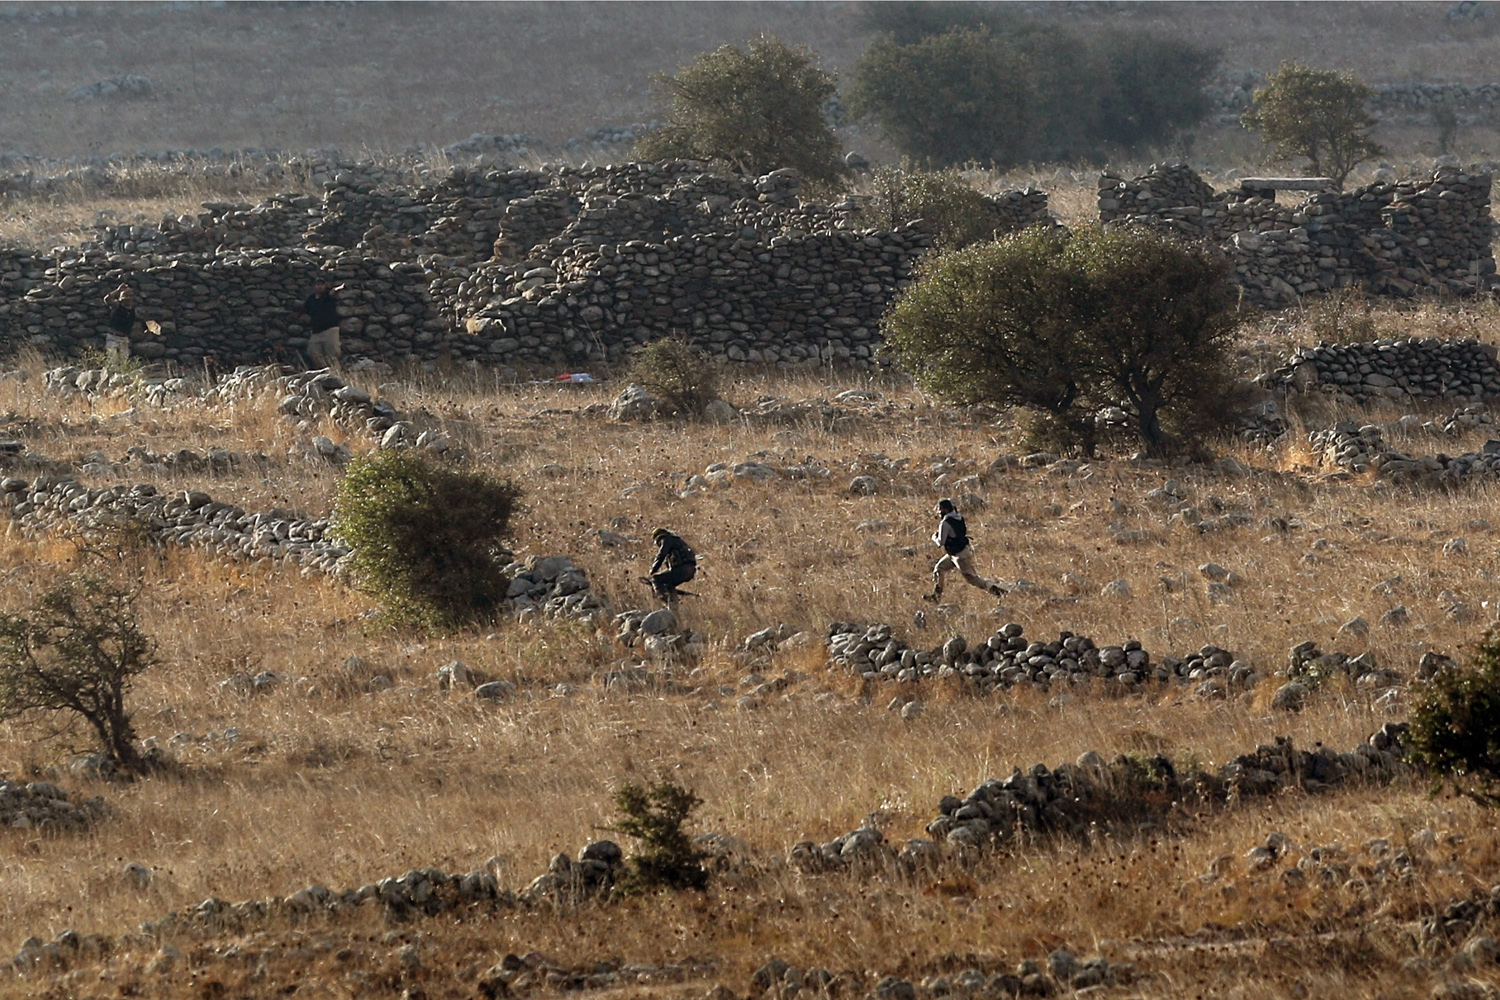 Sept. 2, 2014. Syrian rebels take position near the Israeli-Syrian border, during the fighting between Syrian army and rebels. Islamist militants in Syria have demanded that their Al-Nusra Front group be taken off the UN list of terrorist organizations as a condition for releasing dozens of Fijian peacekeepers captured on the Golan Heights, local media said.